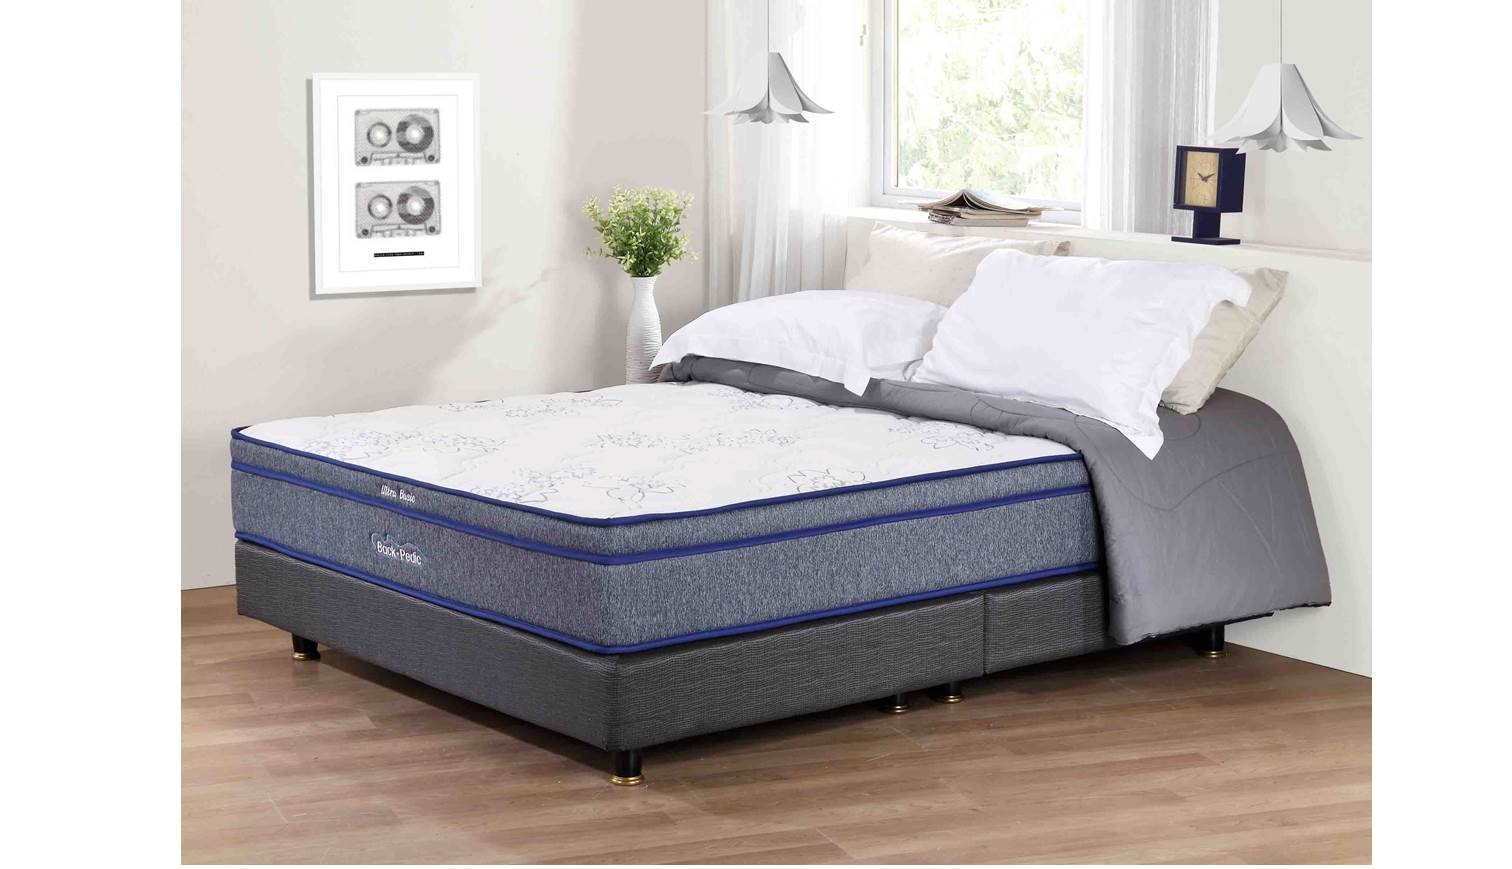 Backpedic Ultra Basic Queen Size Latex Pocketed Spring Mattress